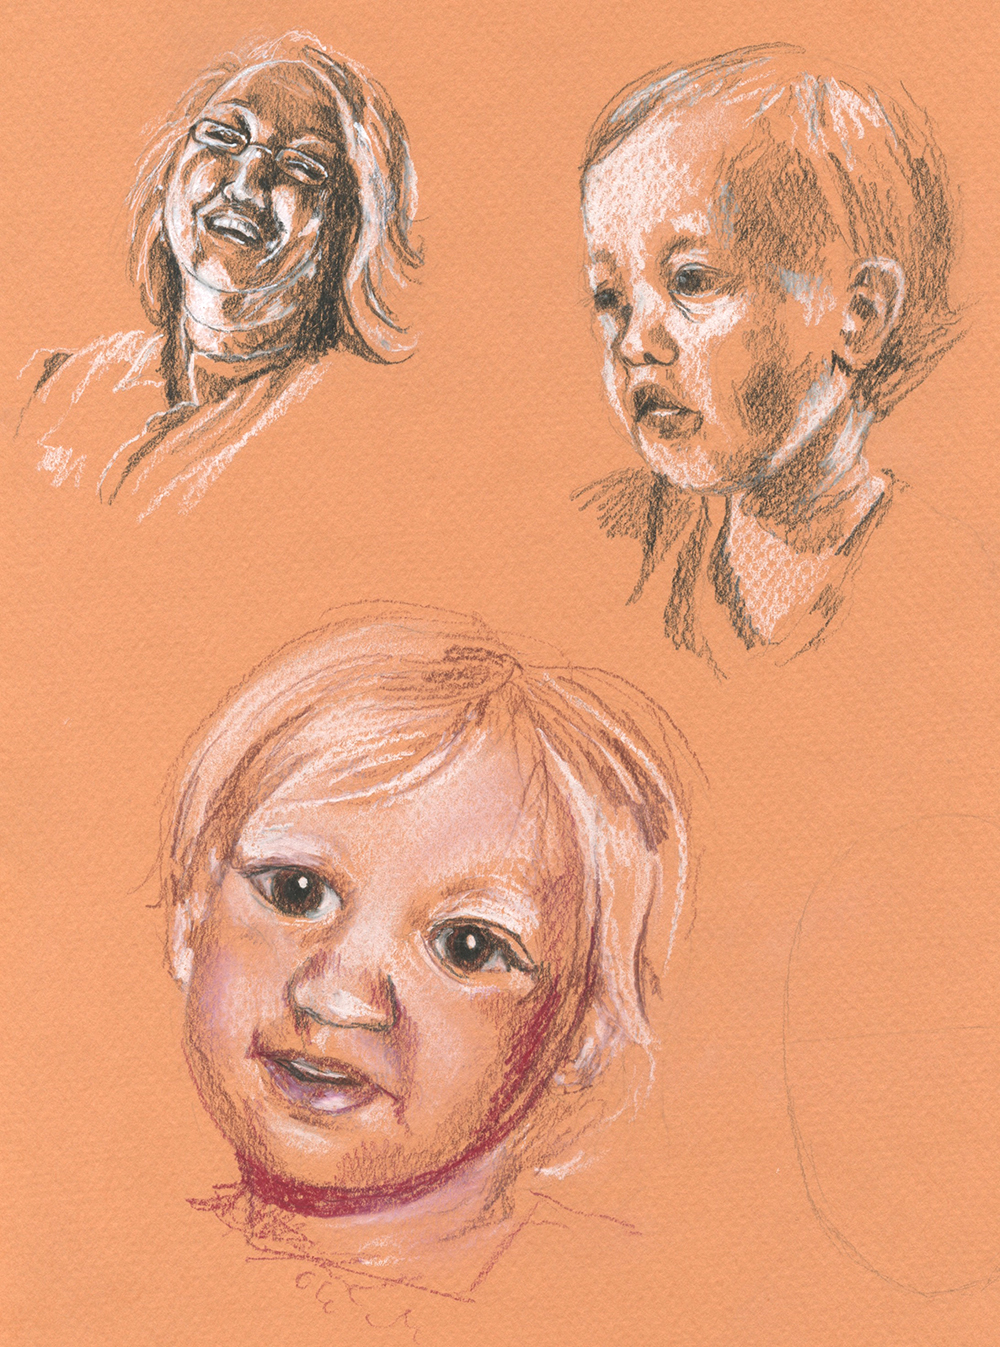 These aren't the best, haha! Pencil Crayon, Pastel Pencil, Pencil and white ink on tinted paper.